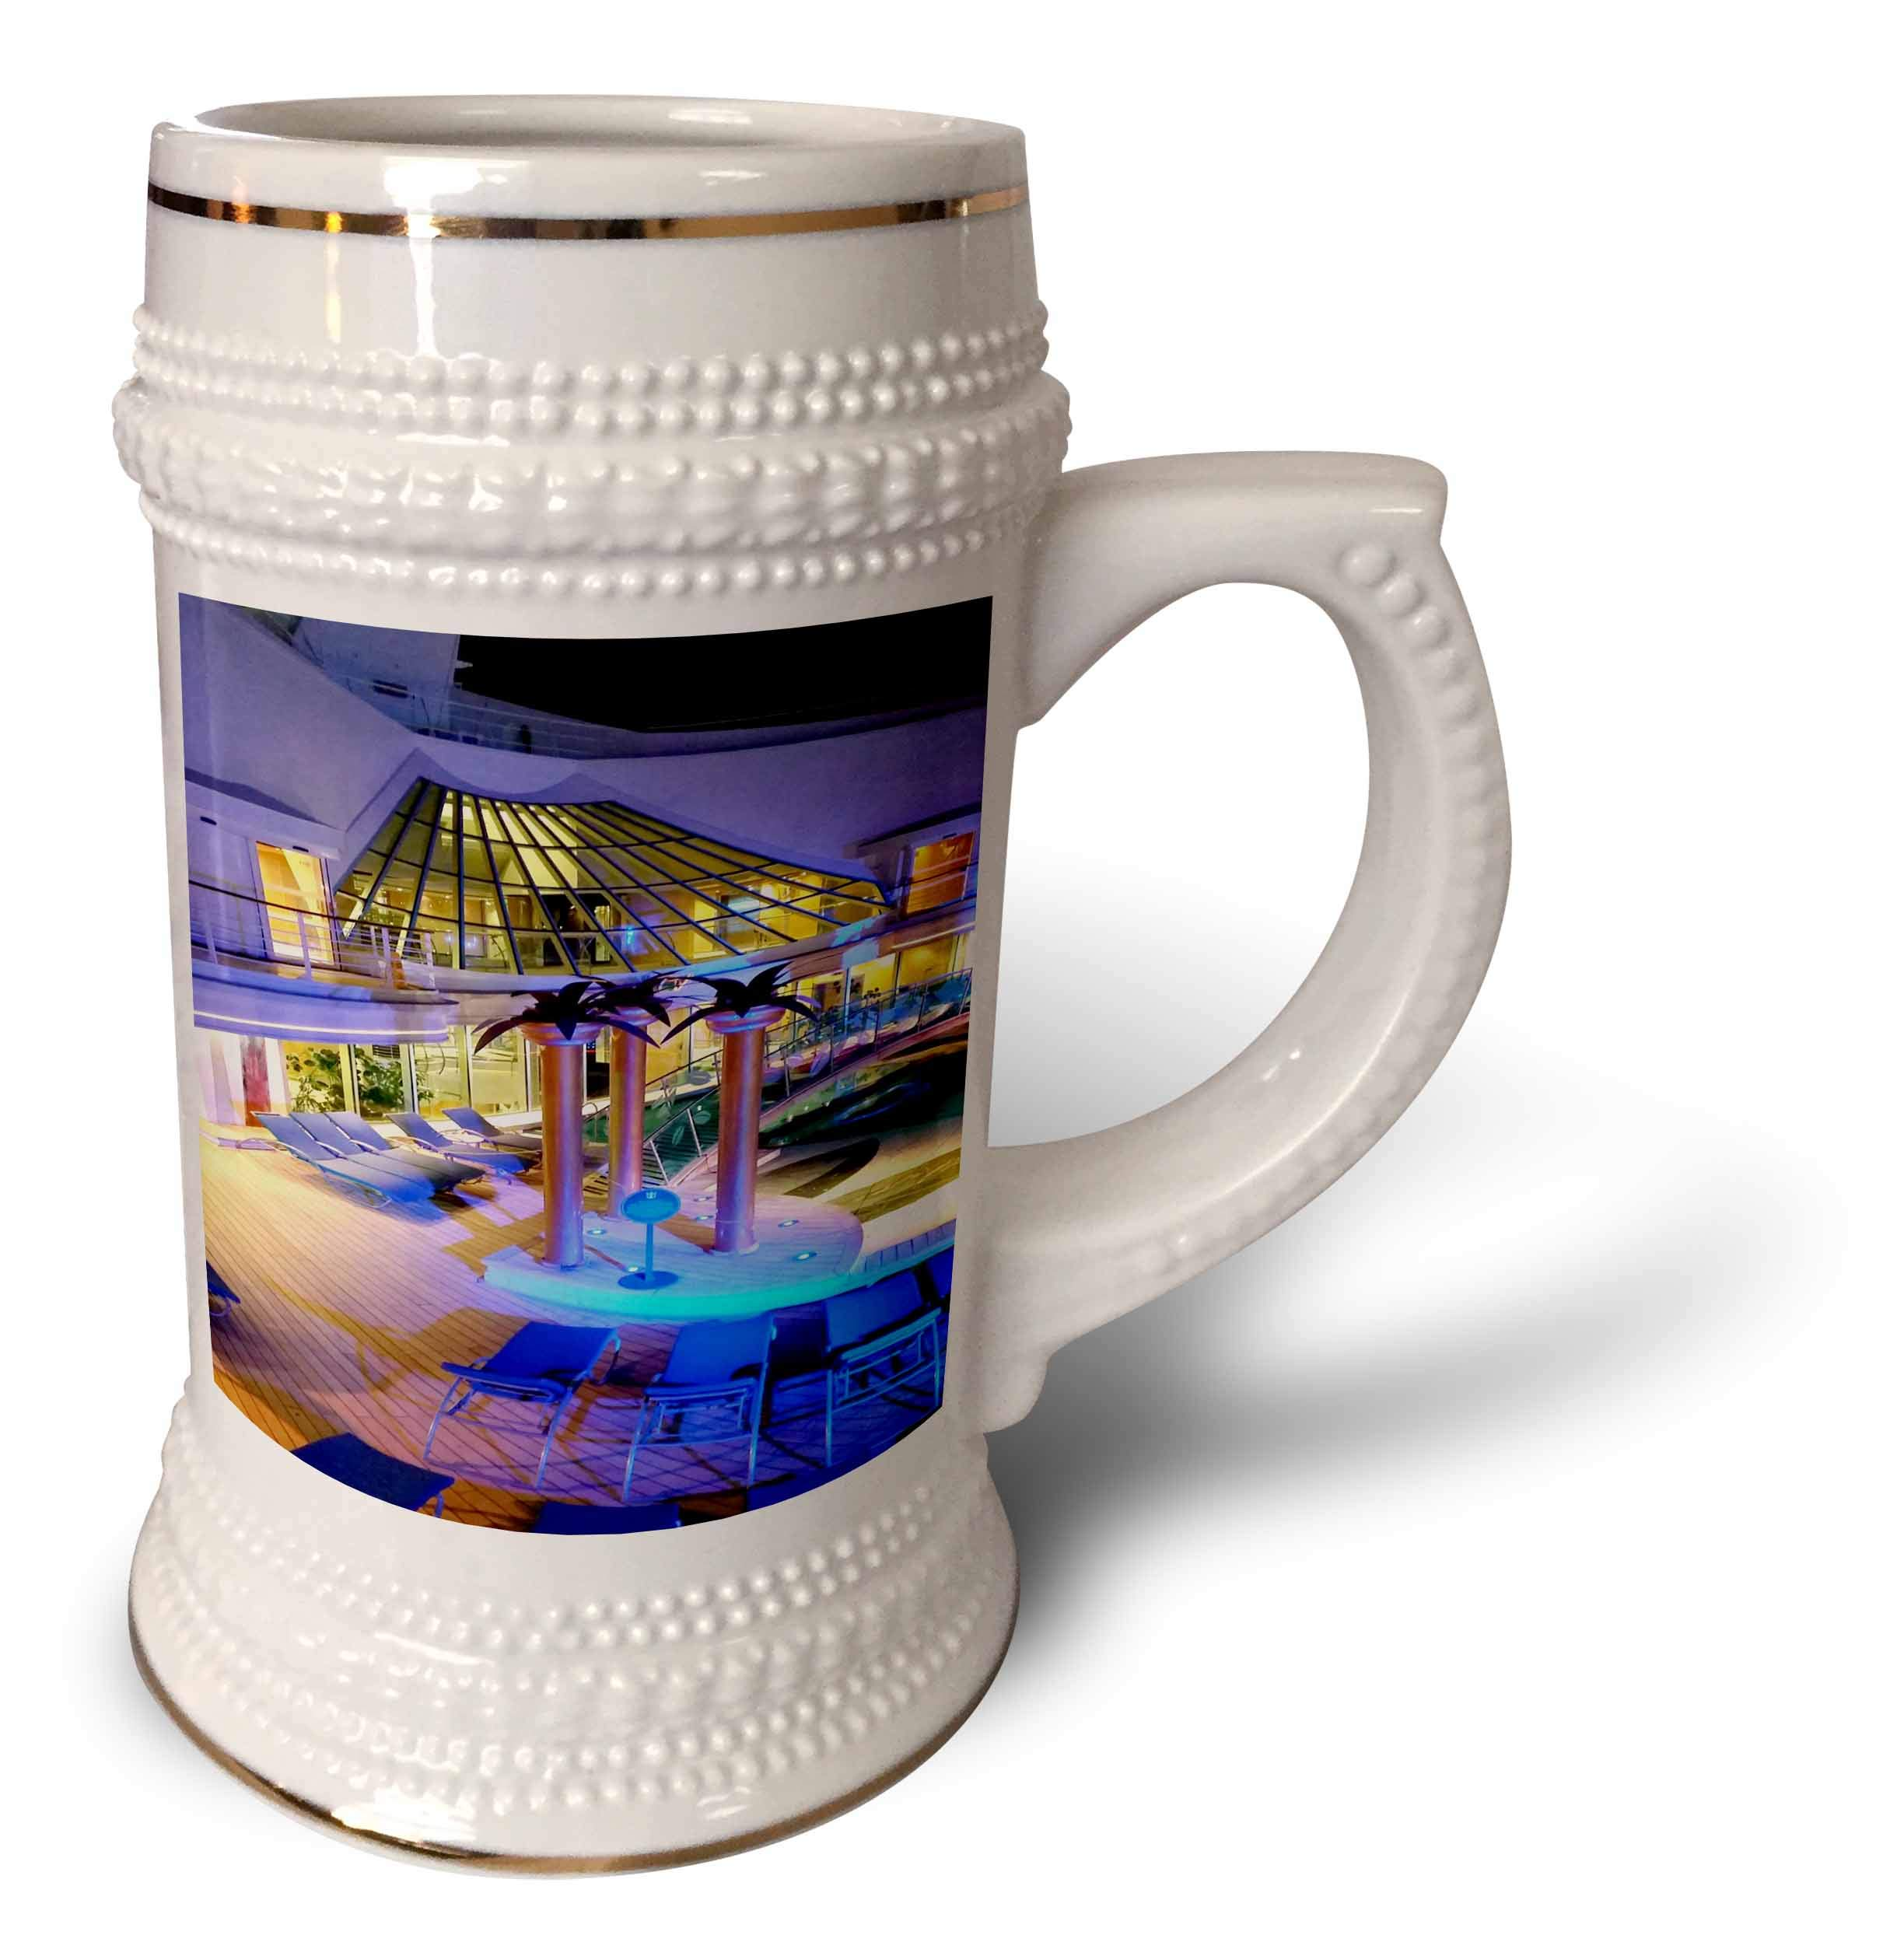 3dRose Lens Art by Florene - Cruise Ship Sites - Image of Adult Pool Area With Spa - 22oz Stein Mug (stn_291436_1)